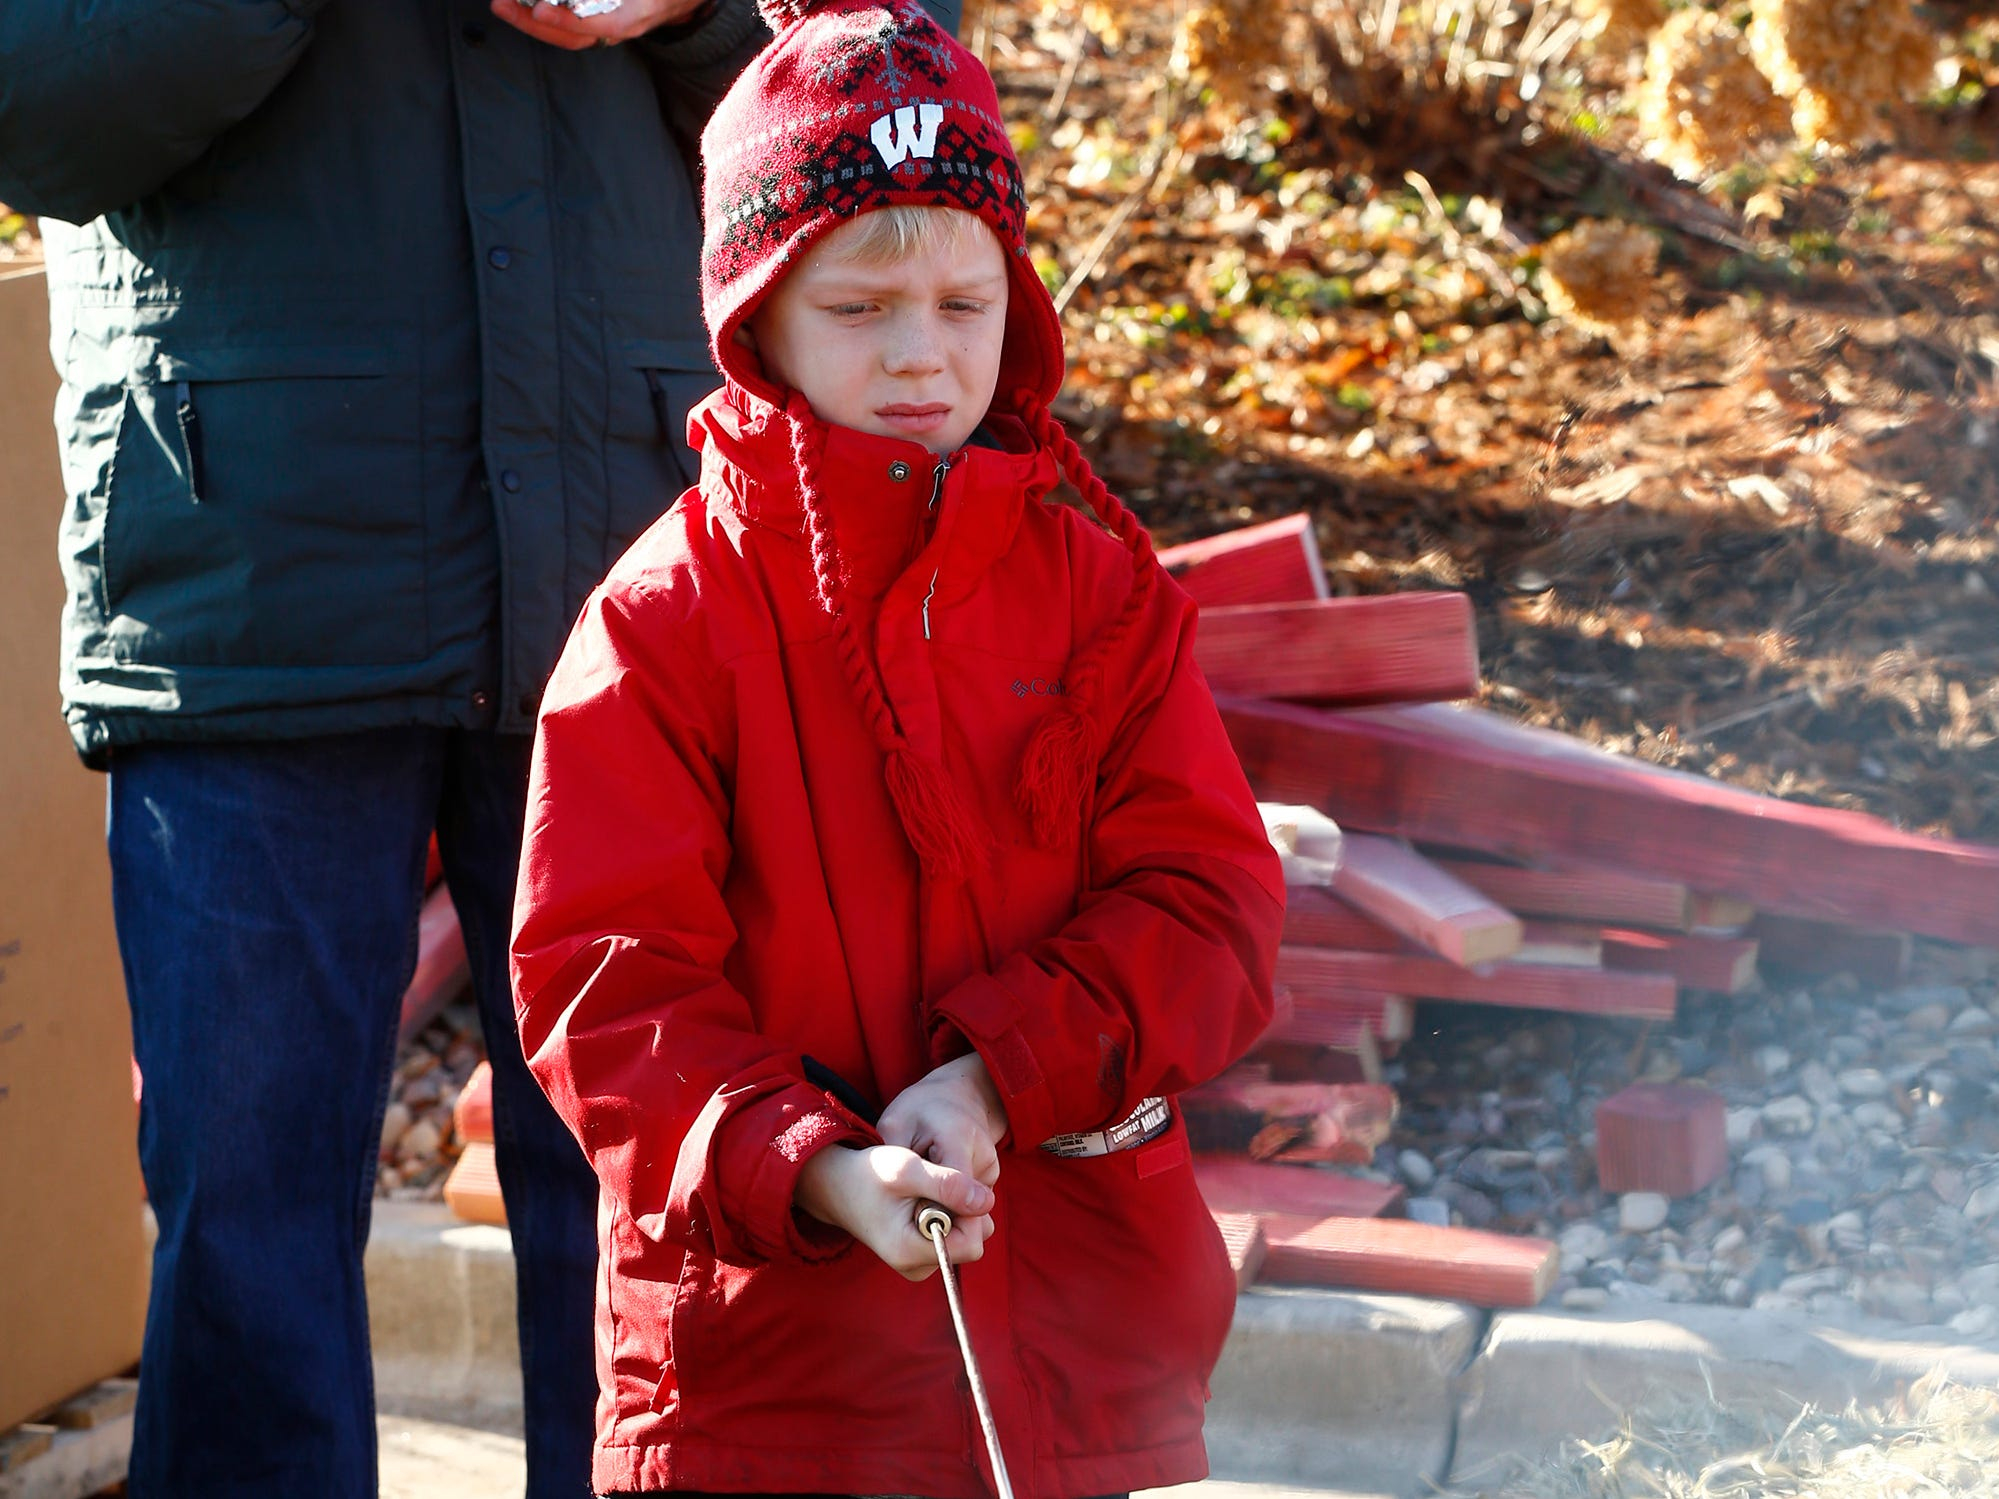 Jordy Hiller, 7, of Cedarburg roasts a marshmallow at the Kids2Kids Christmas celebration at Kapco Metal Stamping in Grafton on Dec. 15 that concluded a month-long toy drive that collected more than 22,000 toys to be distributed to children in Ozaukee and Milwaukee counties.